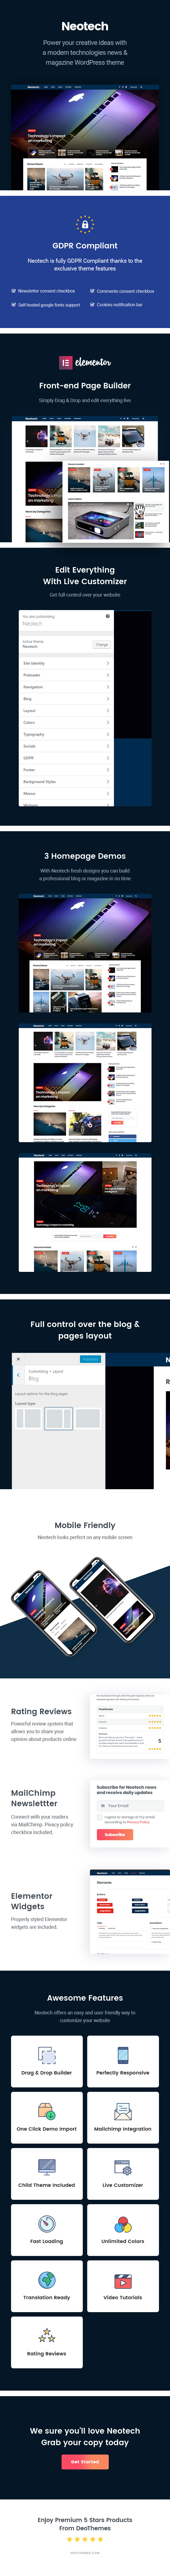 Neotech | Magazine Elementor WordPress Theme - 3